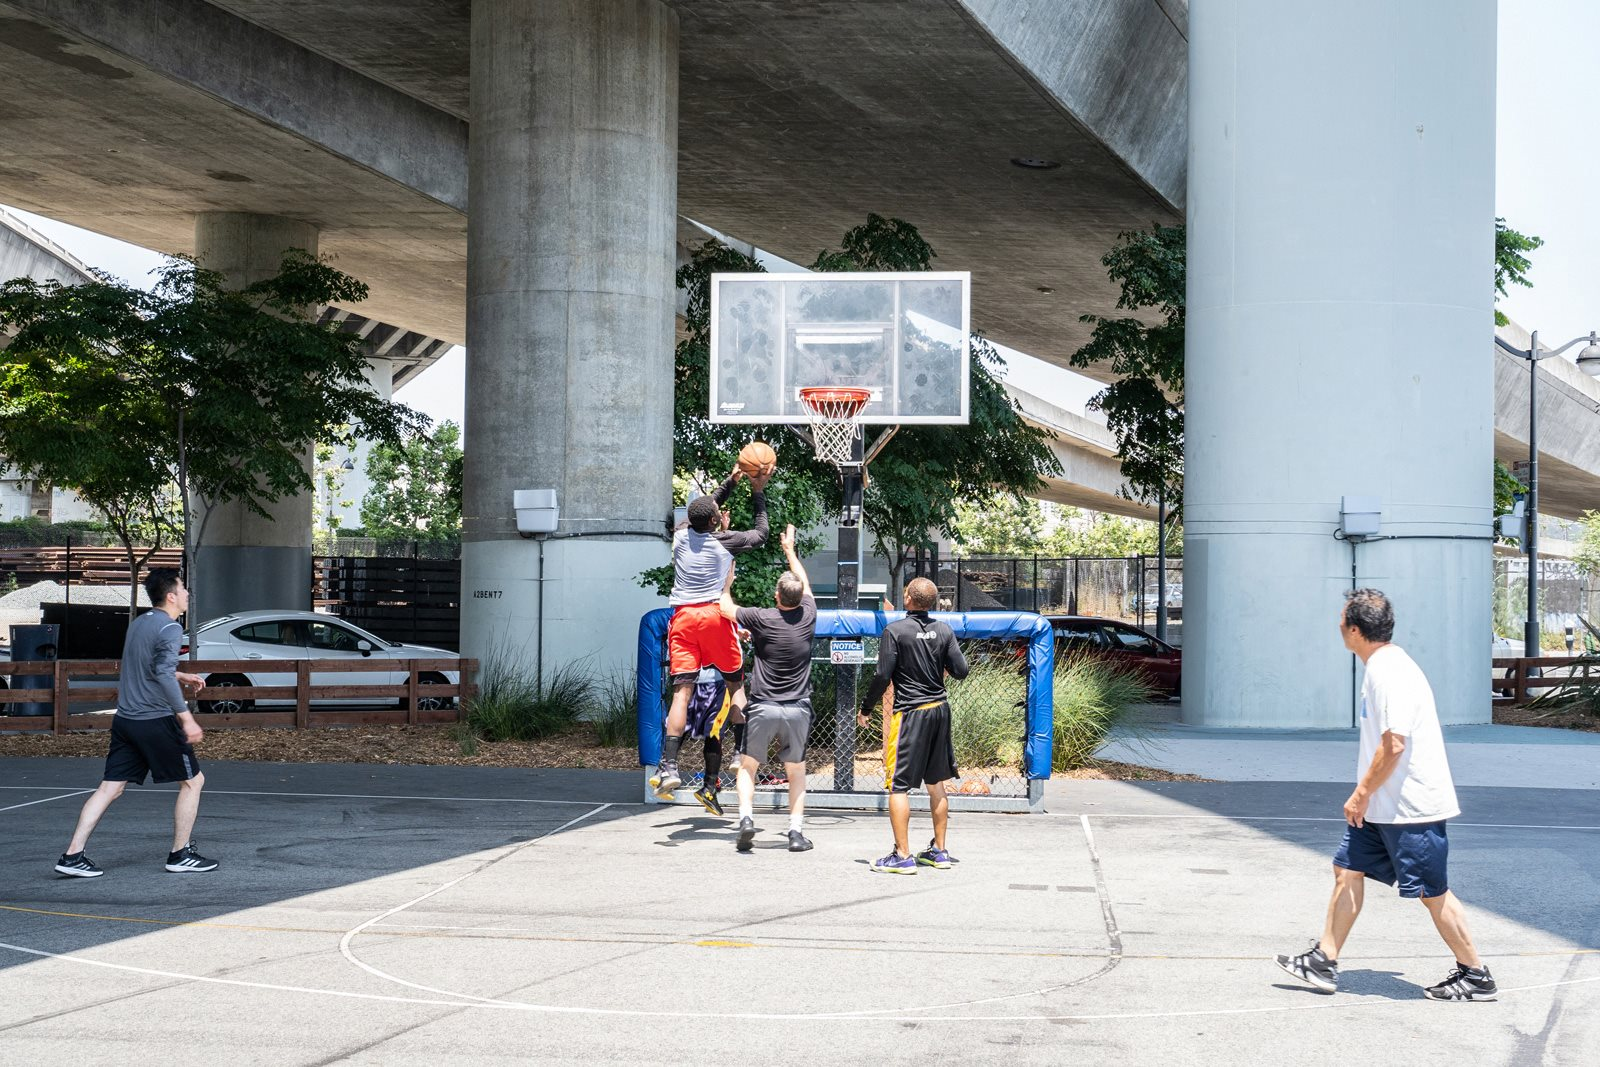 Basketball at Mission Creek Park near Mission Bay by Windsor, California, 94158